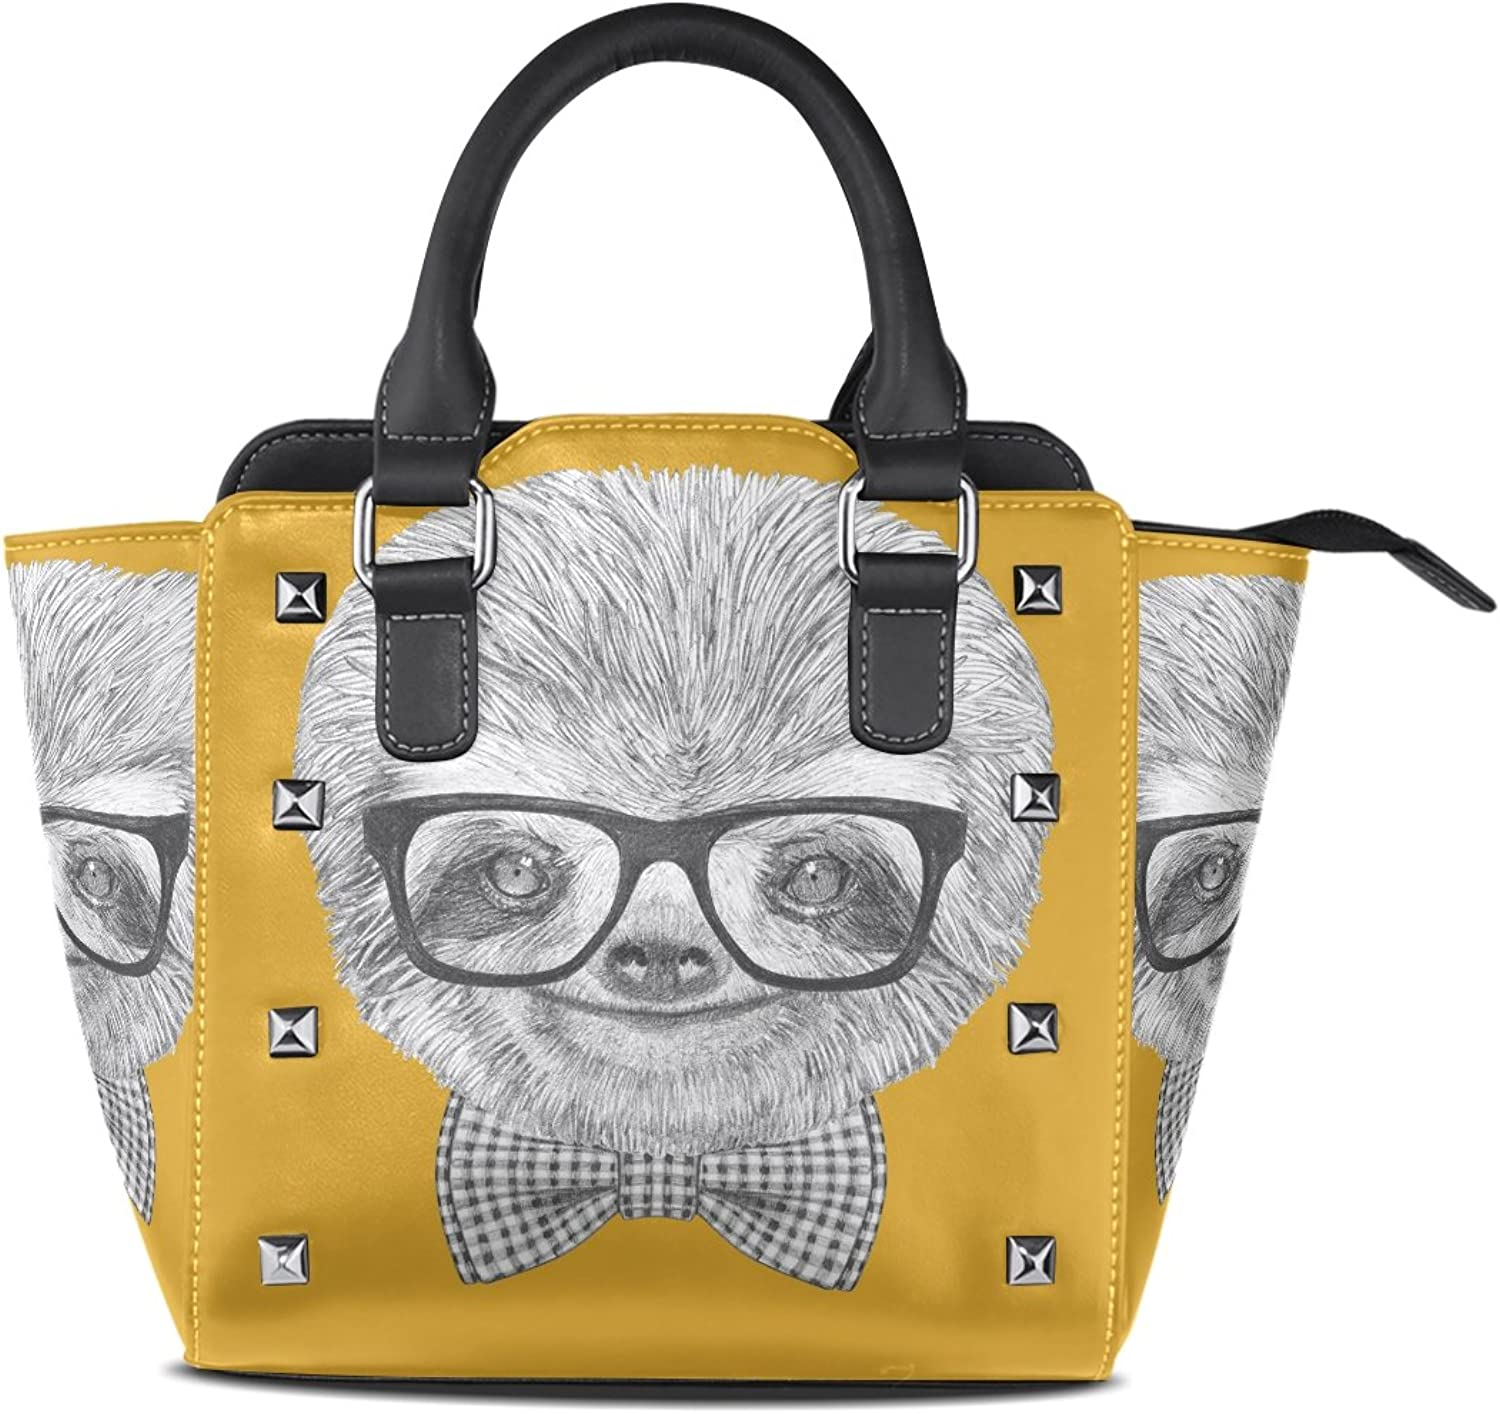 Sunlome Sloth with Glasses and Bow Tie Print Handbags Women's PU Leather Top-Handle Shoulder Bags